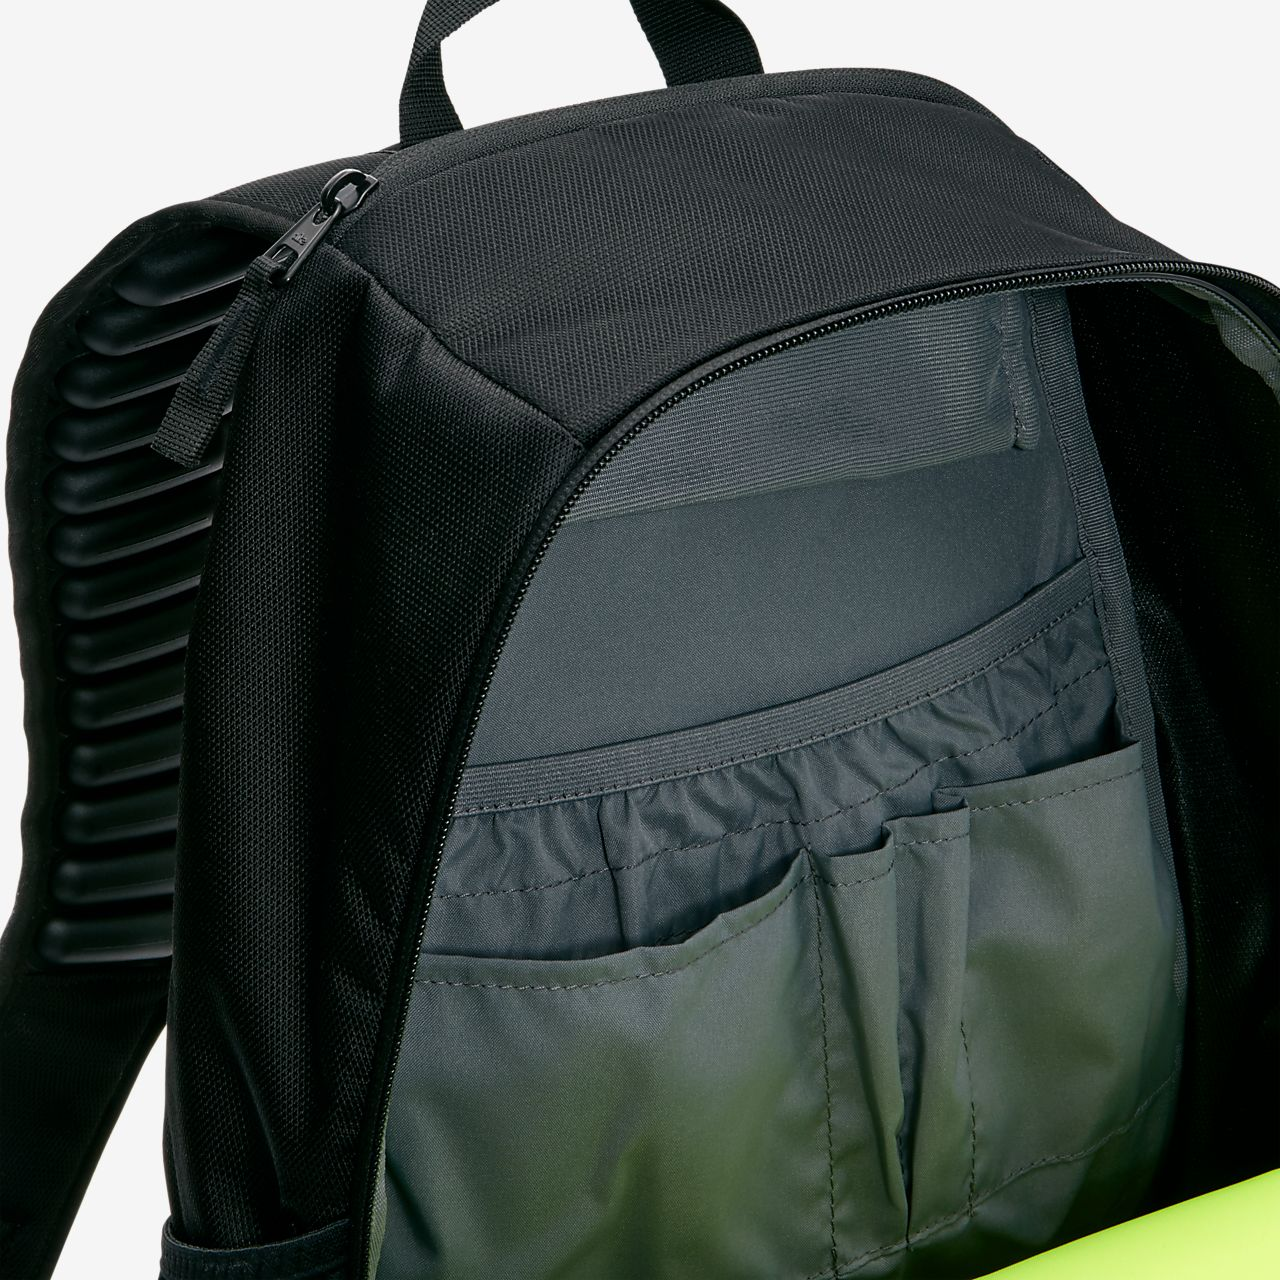 3fed2f96c7 Low Resolution Nike Vapor Speed Training Backpack Nike Vapor Speed Training  Backpack